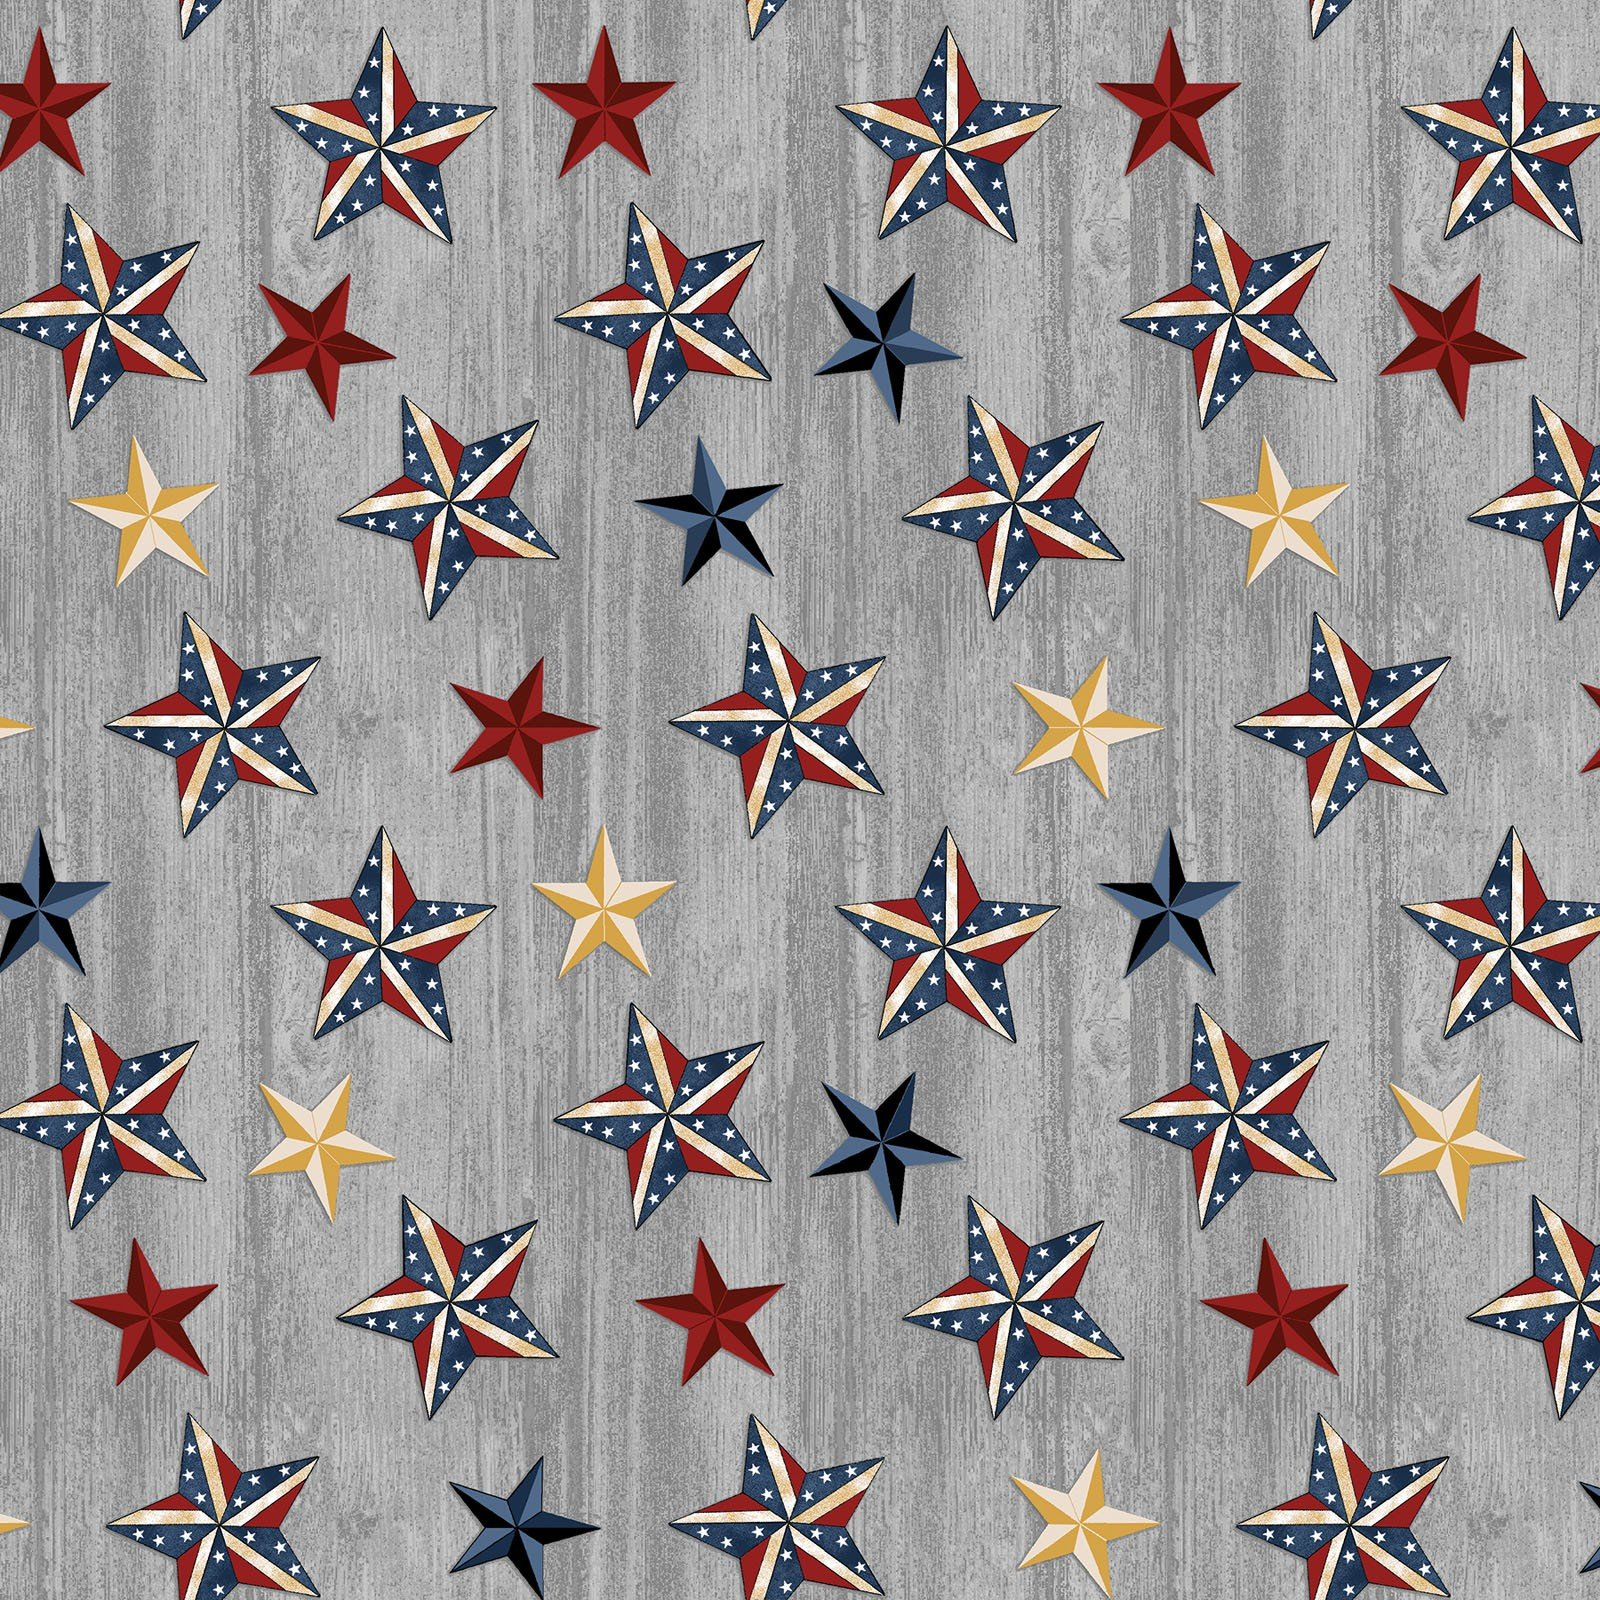 Grey Stars on Wood - American Rustic - BEN6333-11